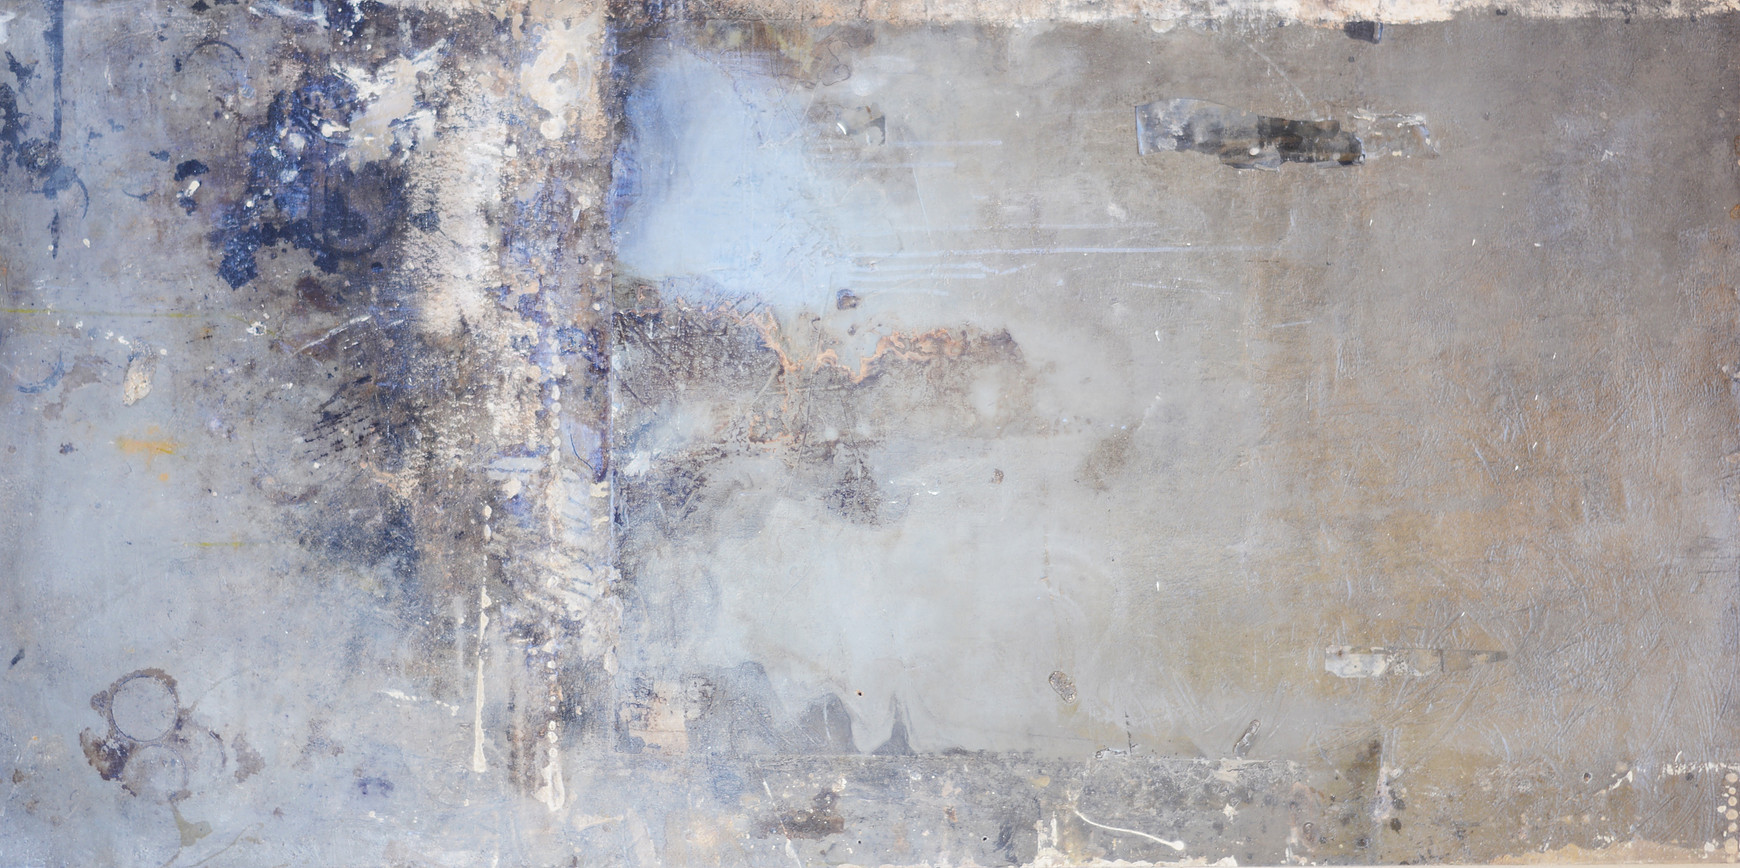 Water seeks its own level_2016_36x72_house paint_emulsion_oil paint_shellac_ink & stain emulsion.jpeg